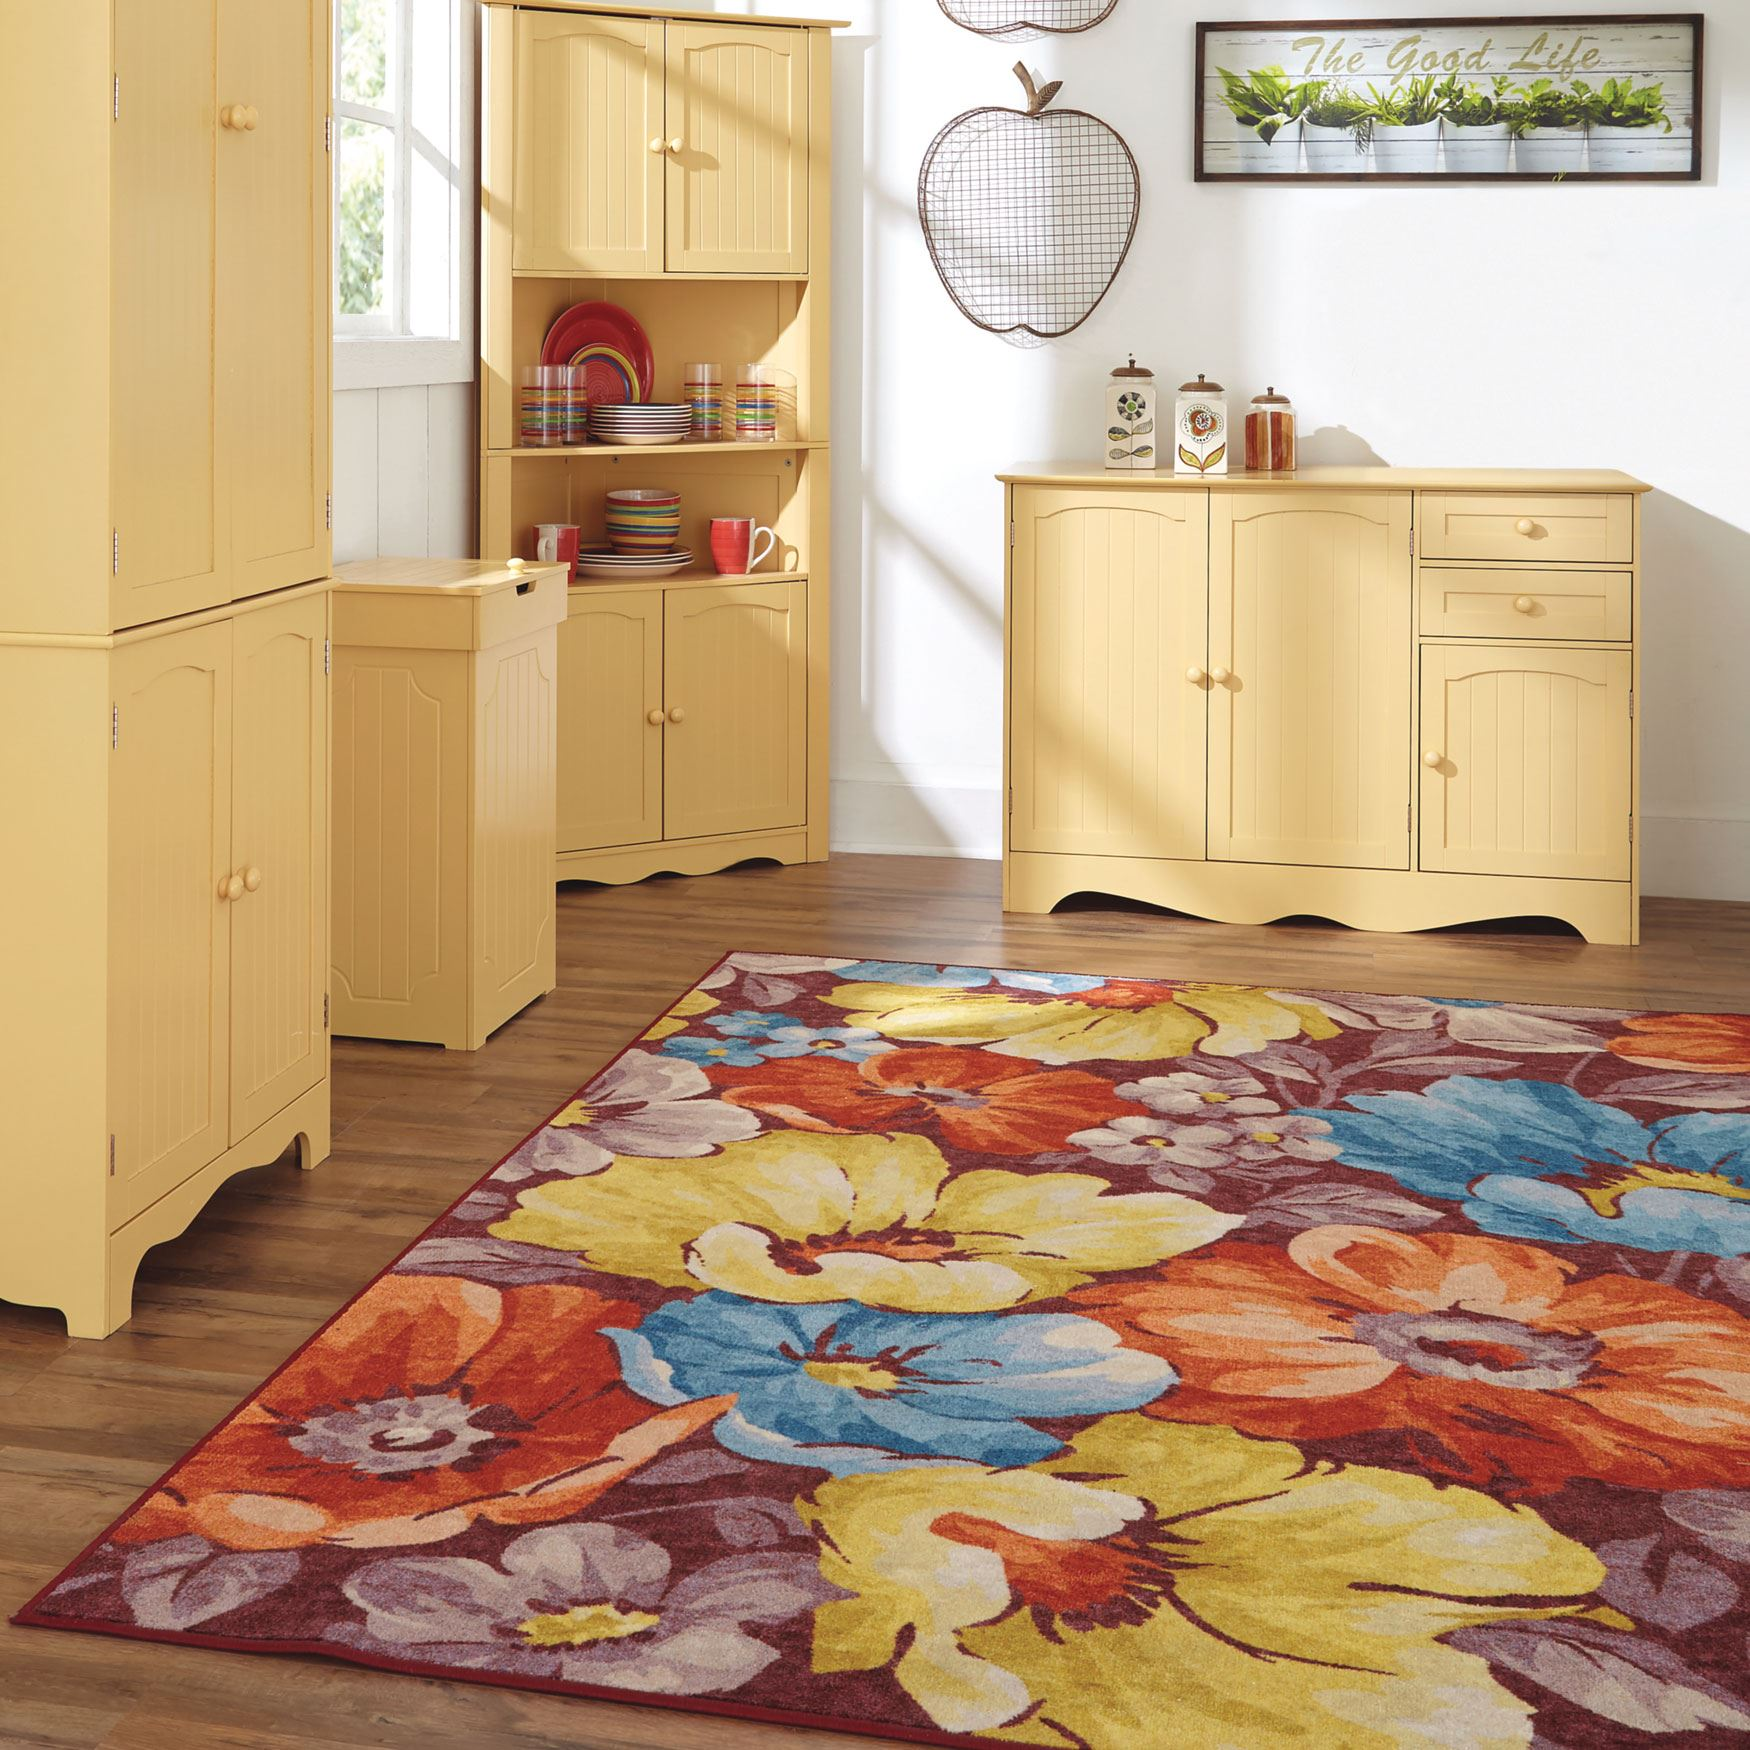 Large Fiore Floral Rug ,